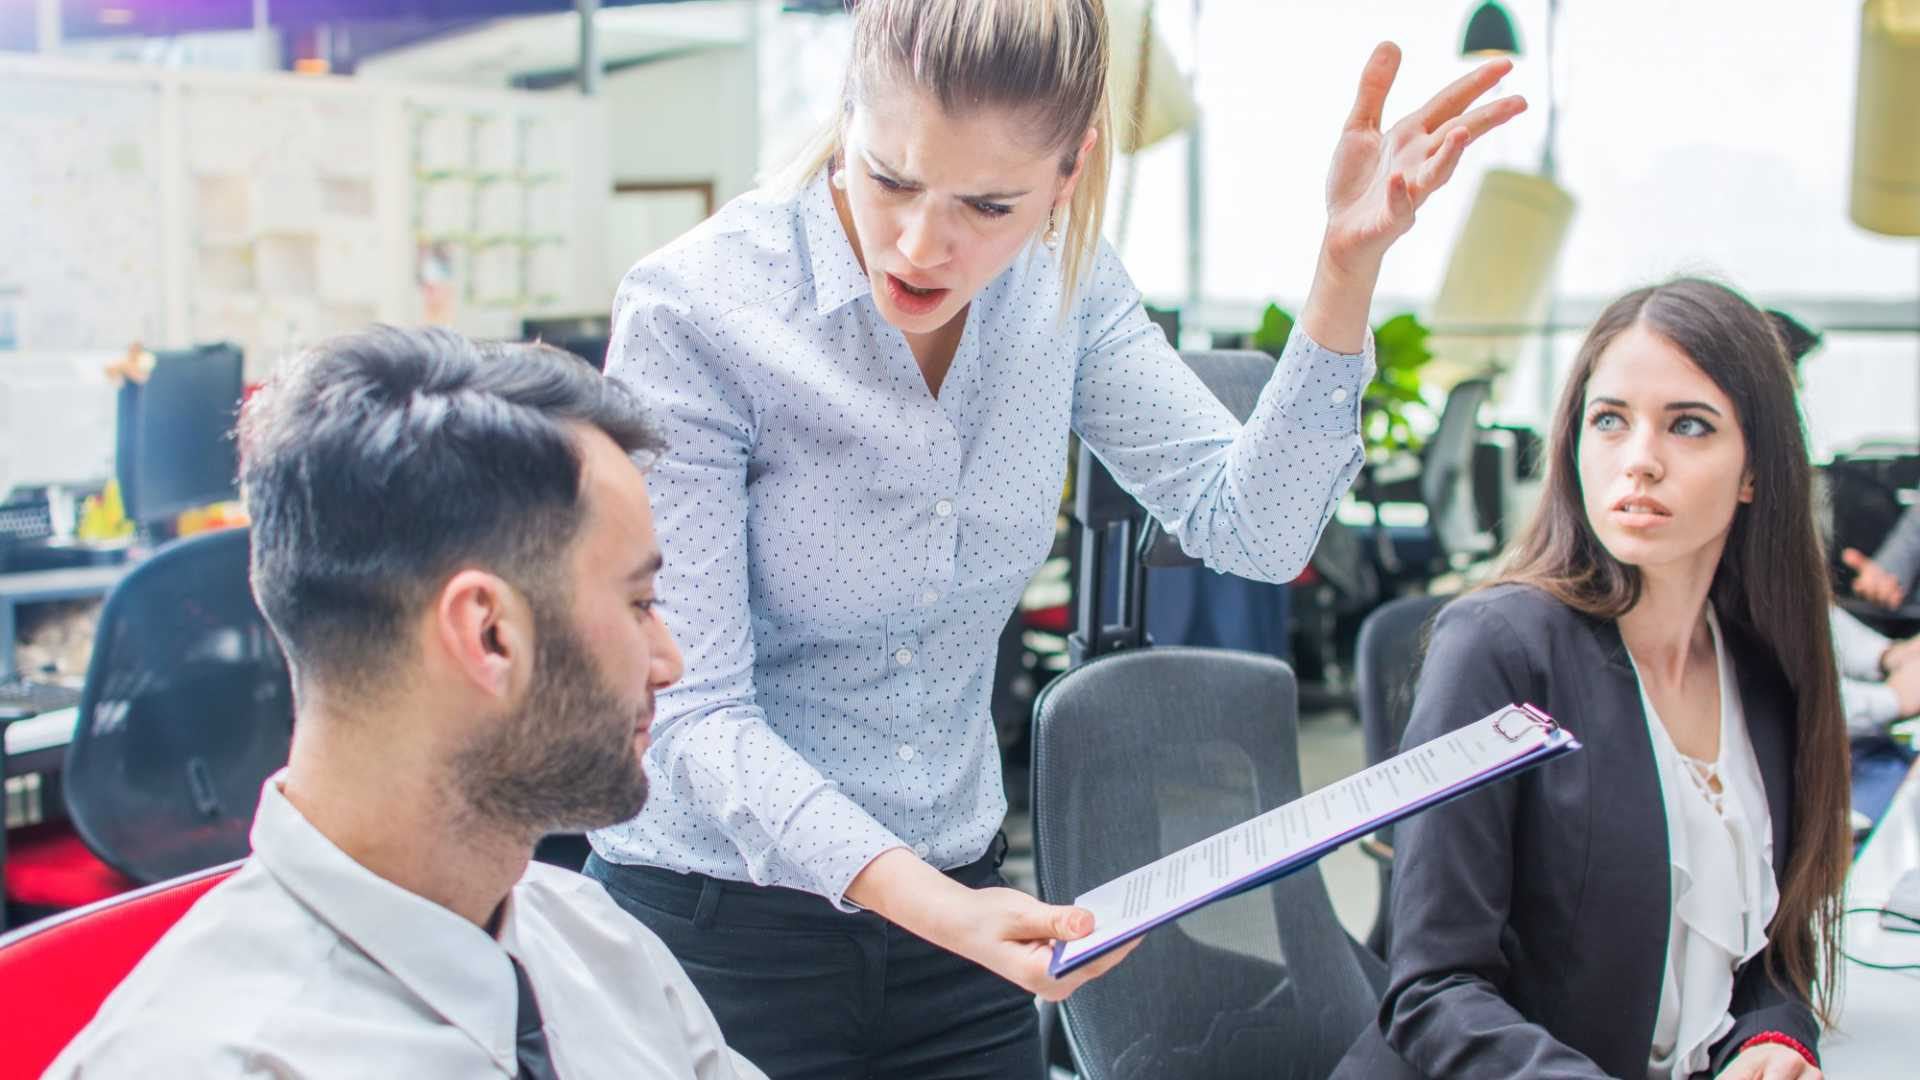 One Rule Every Manager Should Live By In Order to Manage Well